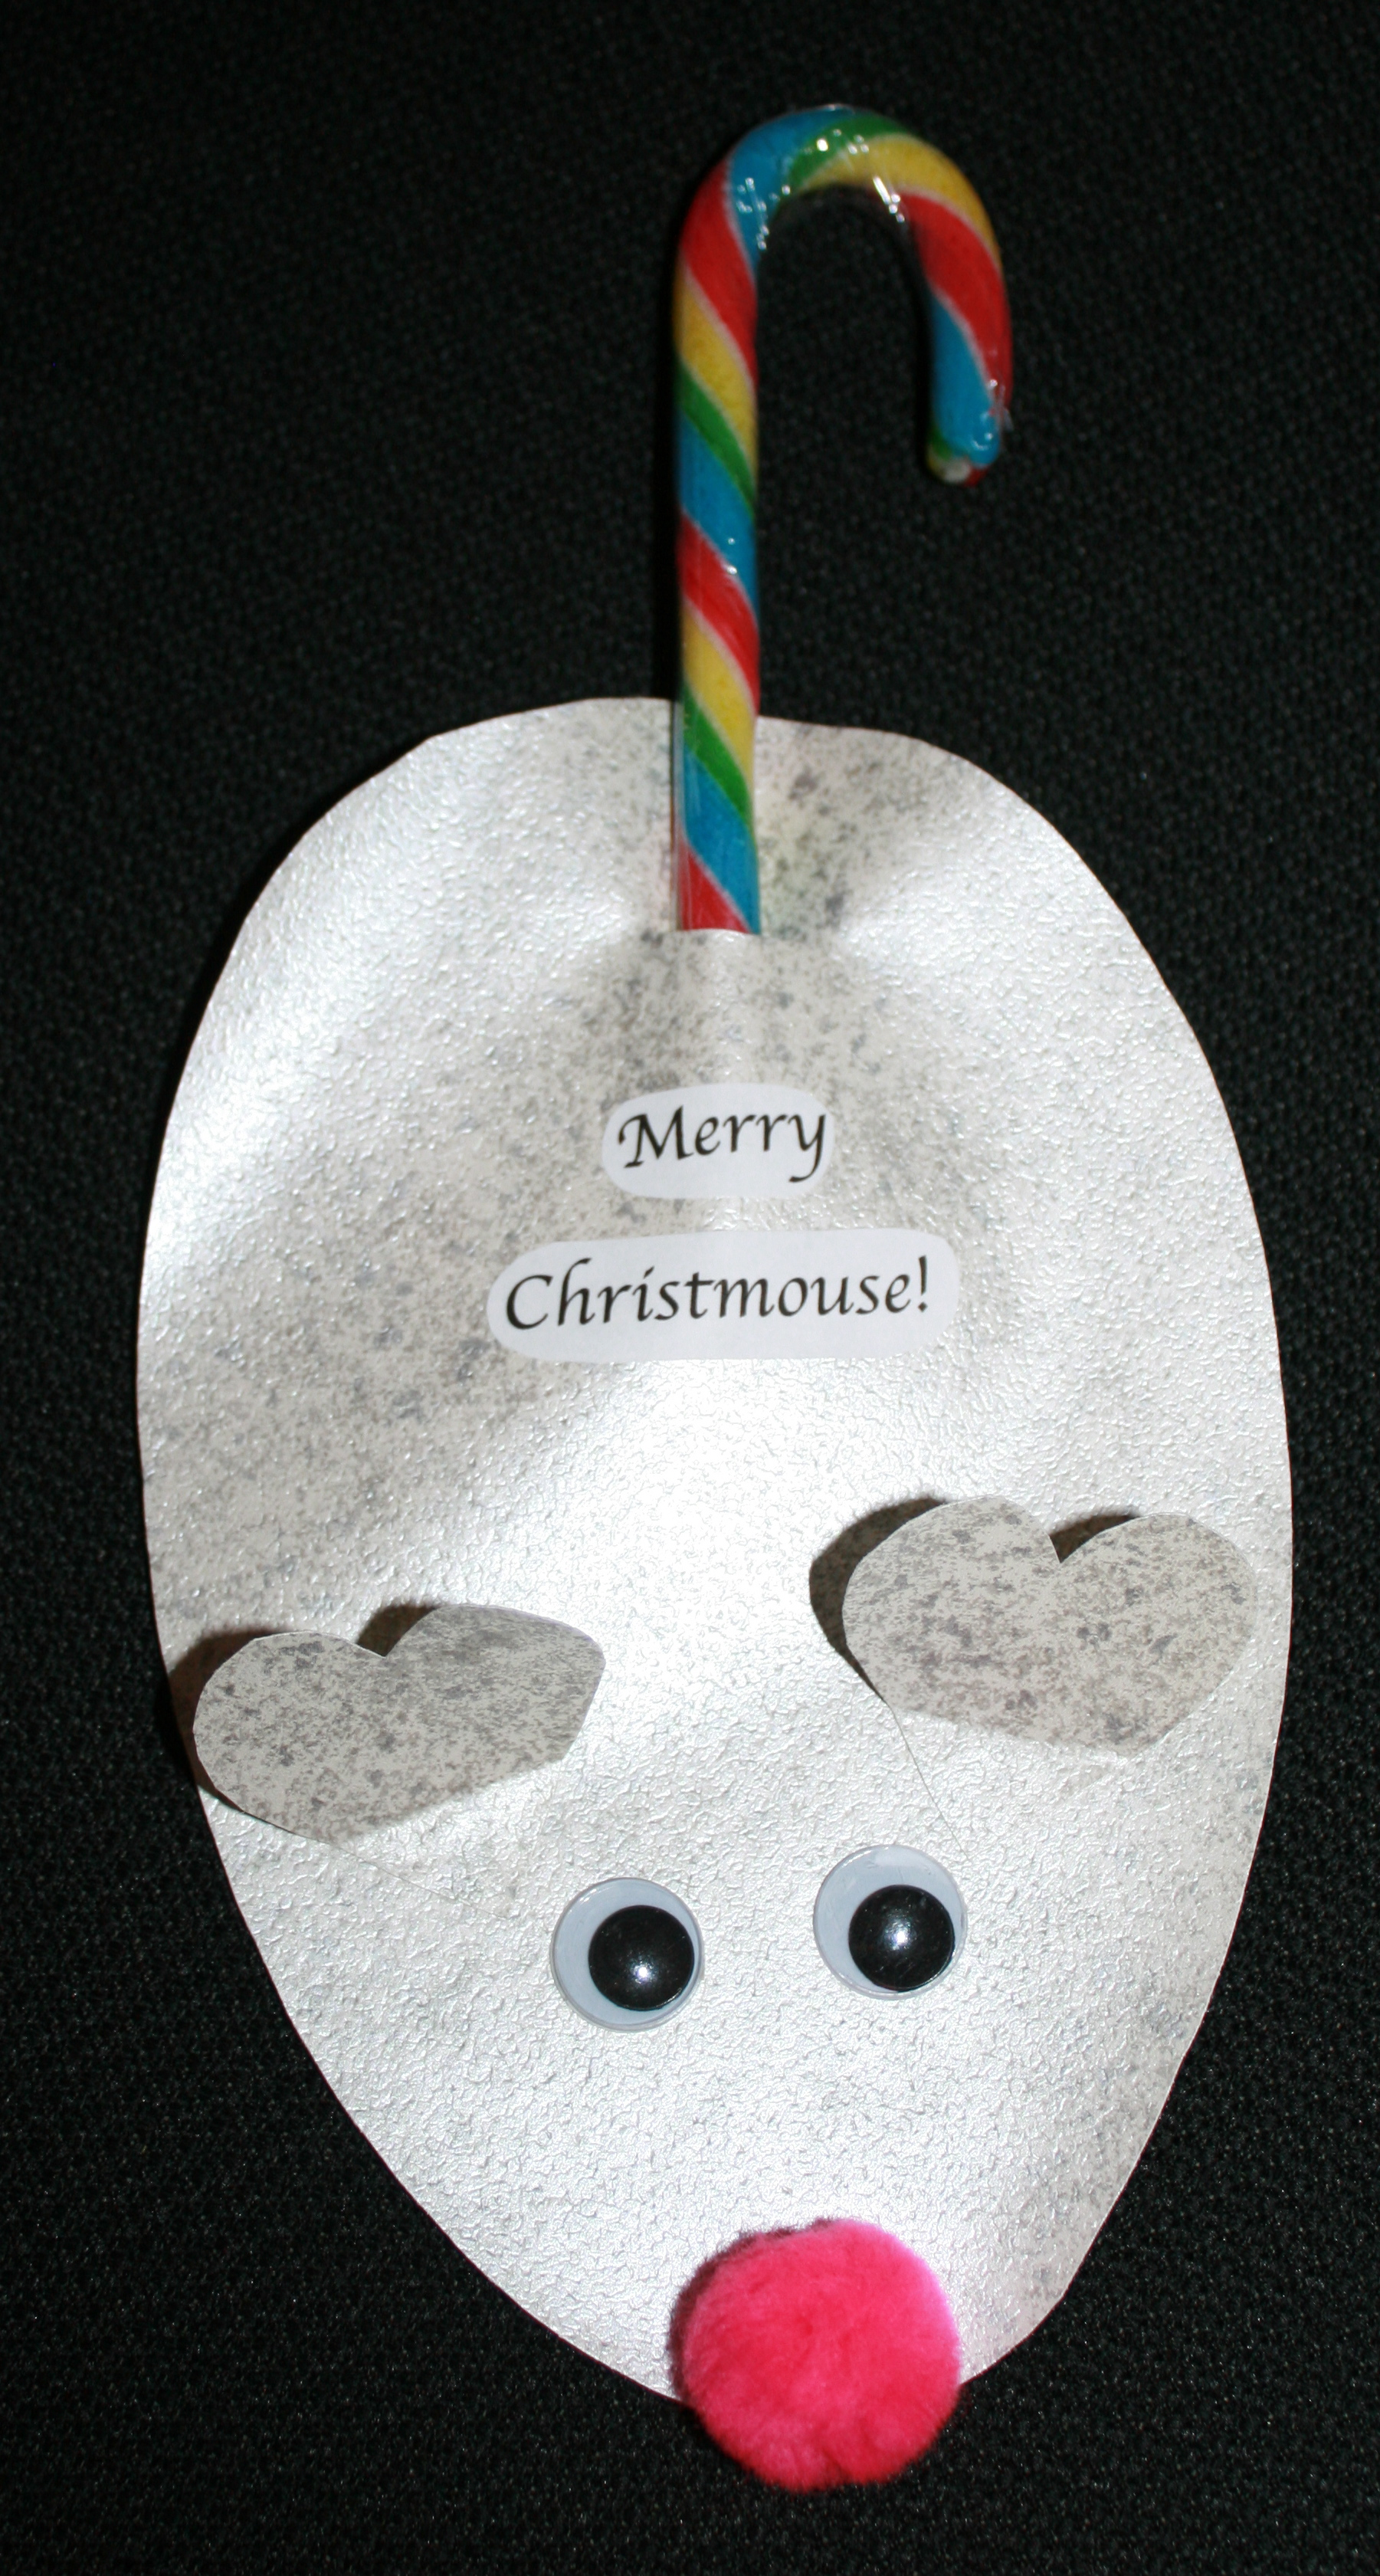 Merry Christmouse, mouse ornament, candy cane mouse ornament, candy cane ornament, Christmas ornaments, Christmas crafts, keepsake ornaments,